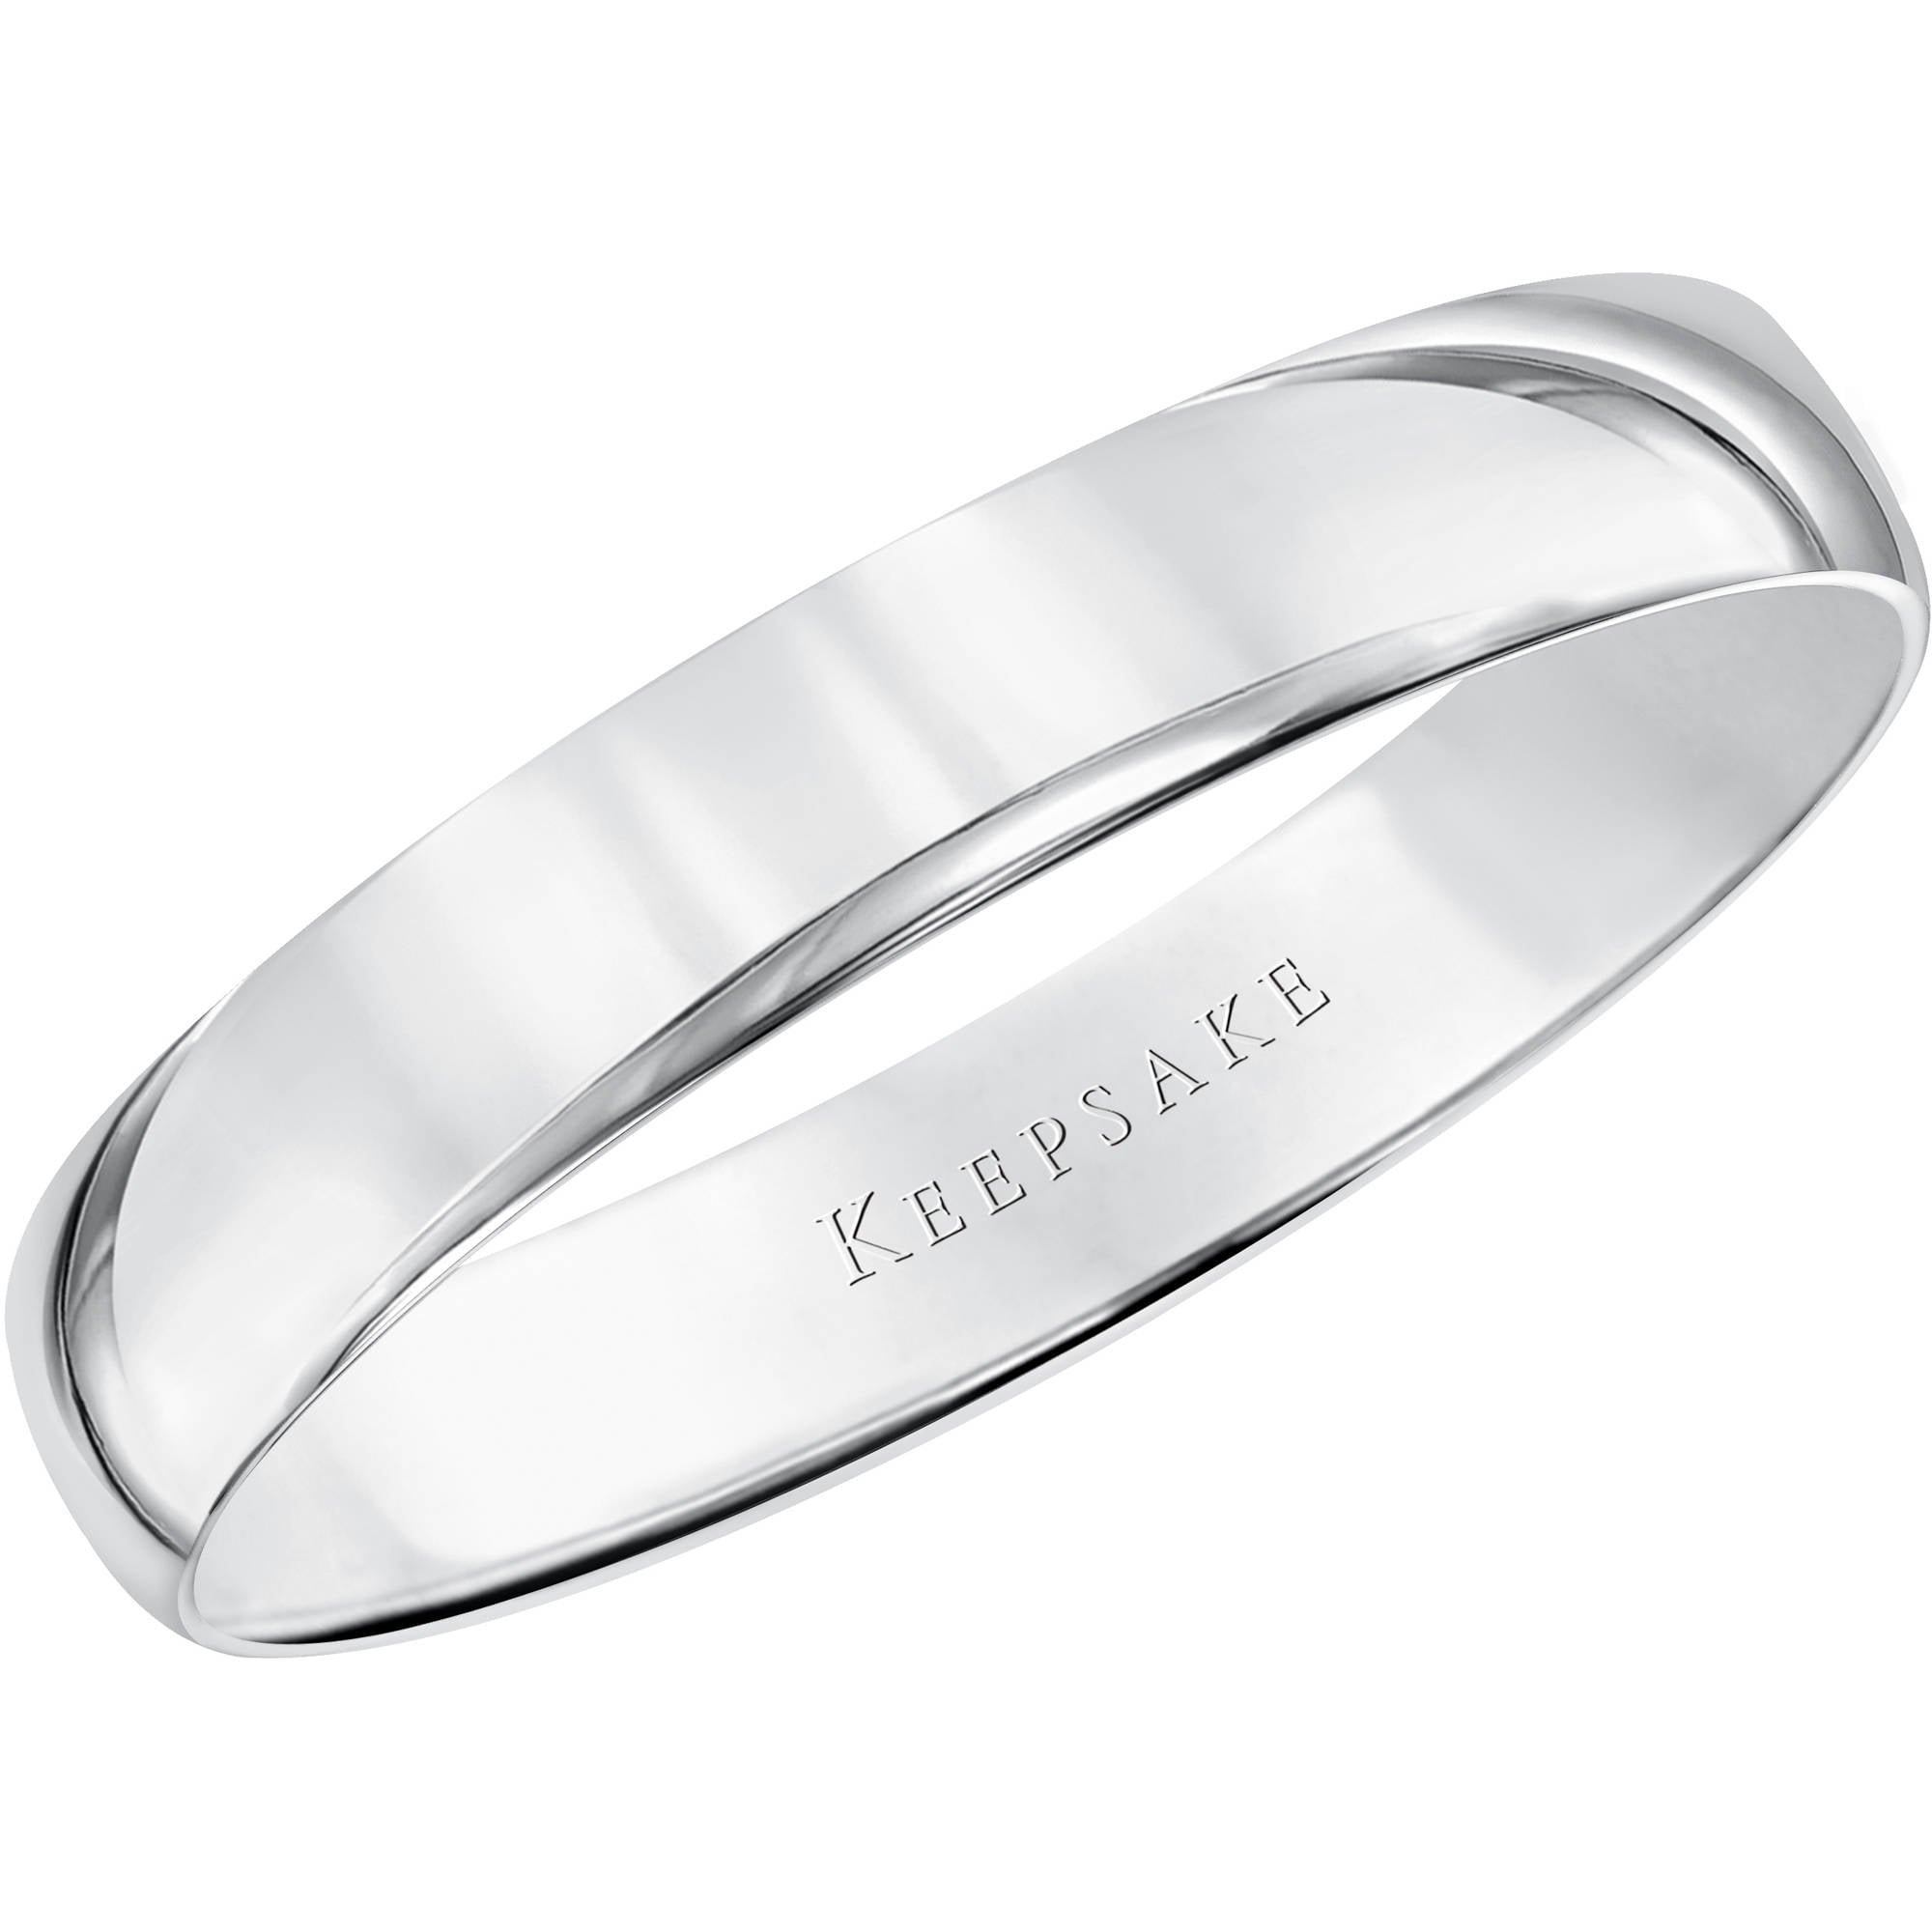 Keepsake 10kt White Gold Comfort Fit Wedding Band, 5.5mm by Frederick Goldman